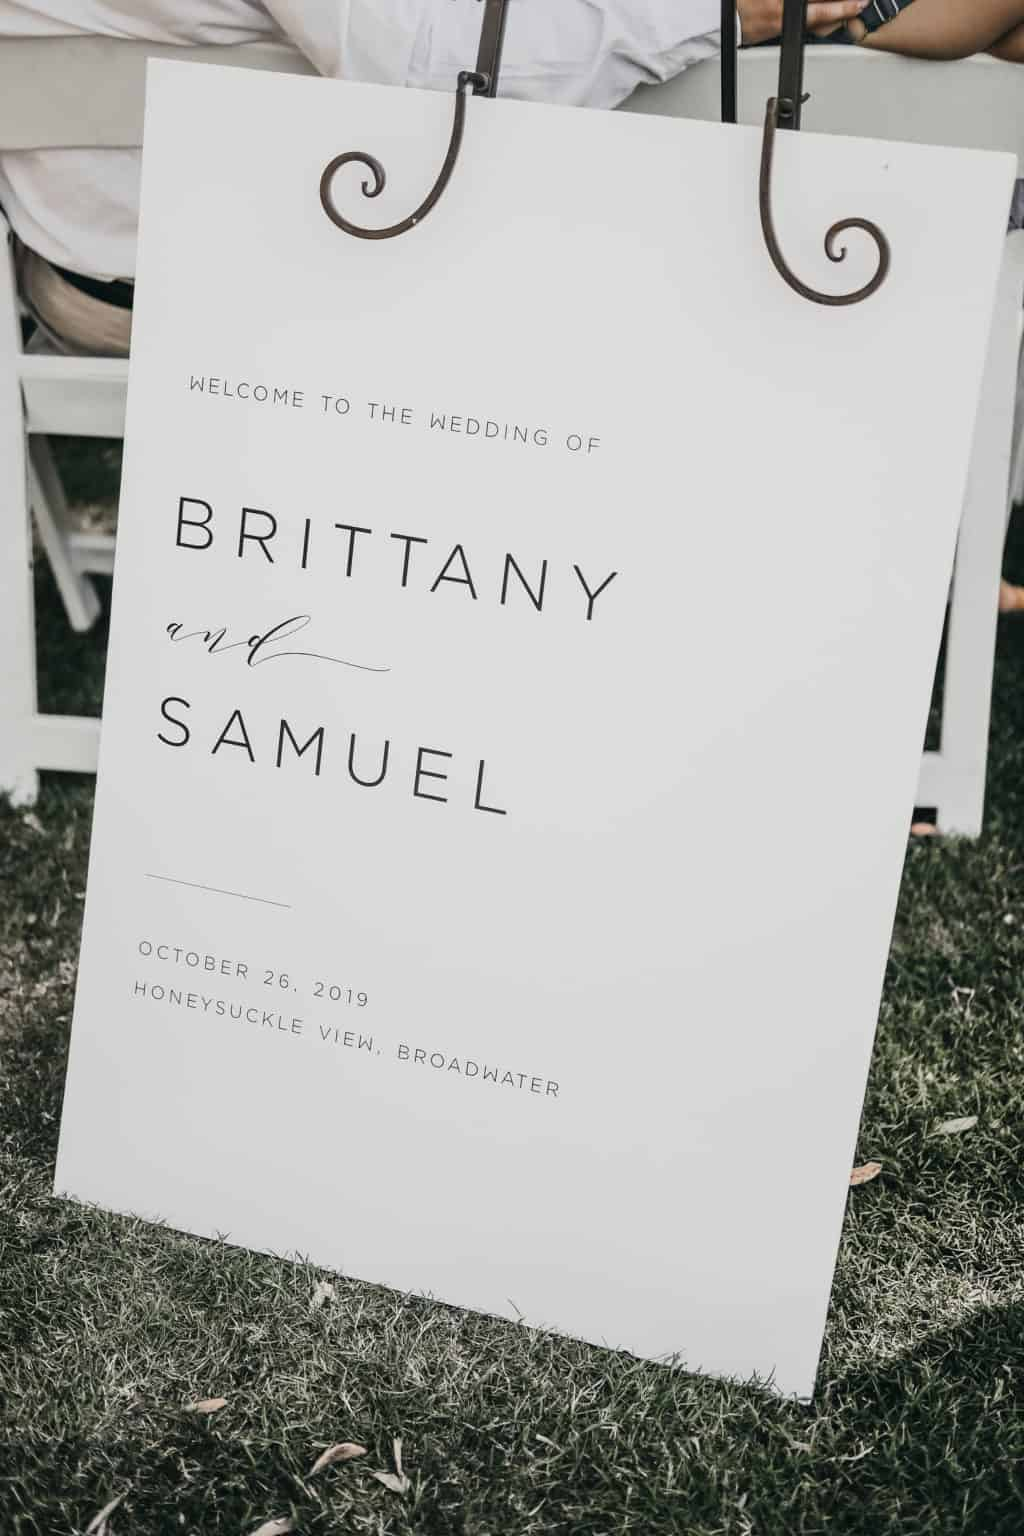 Sam and Brittany Arctic Fox Events Wedding Planning and Styling 5